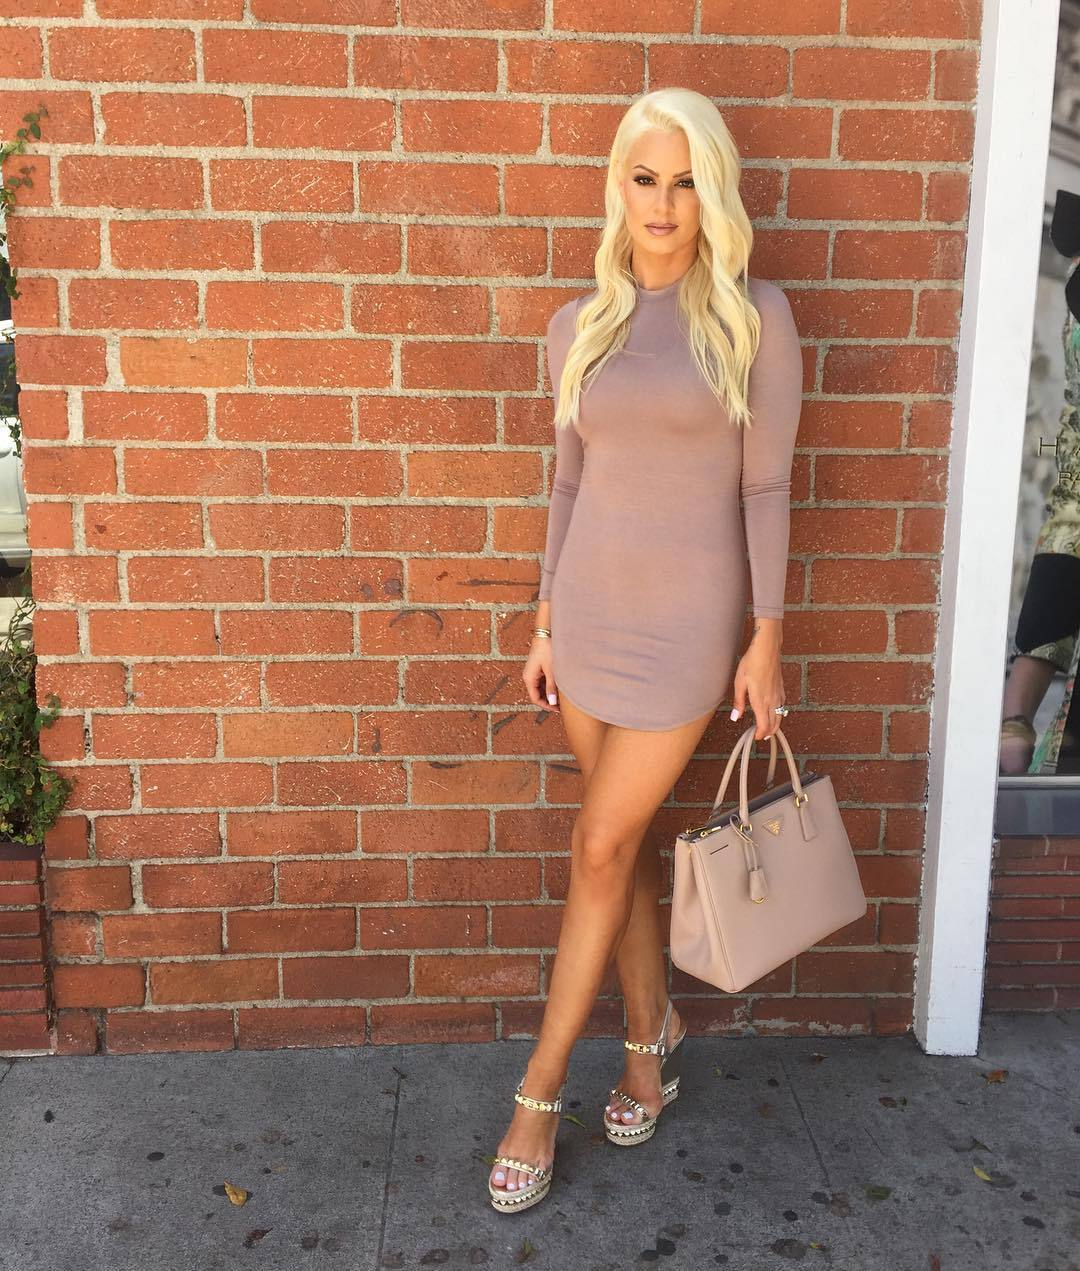 Feet Maryse Mizanin nude photos 2019